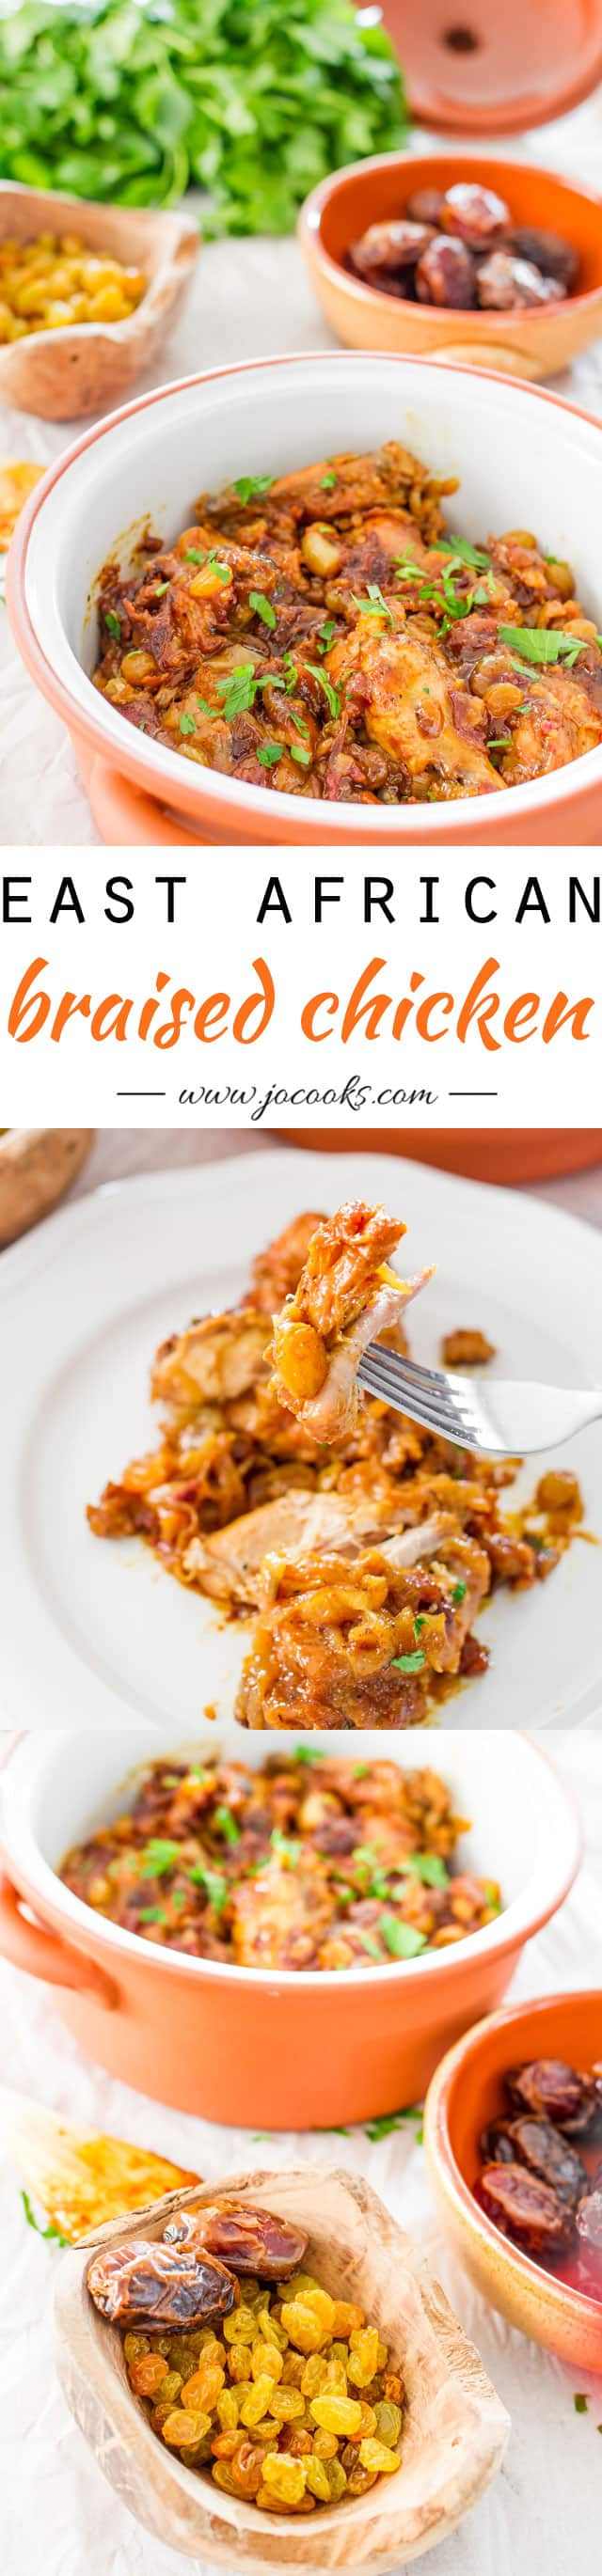 East African Braised Chicken photo collage